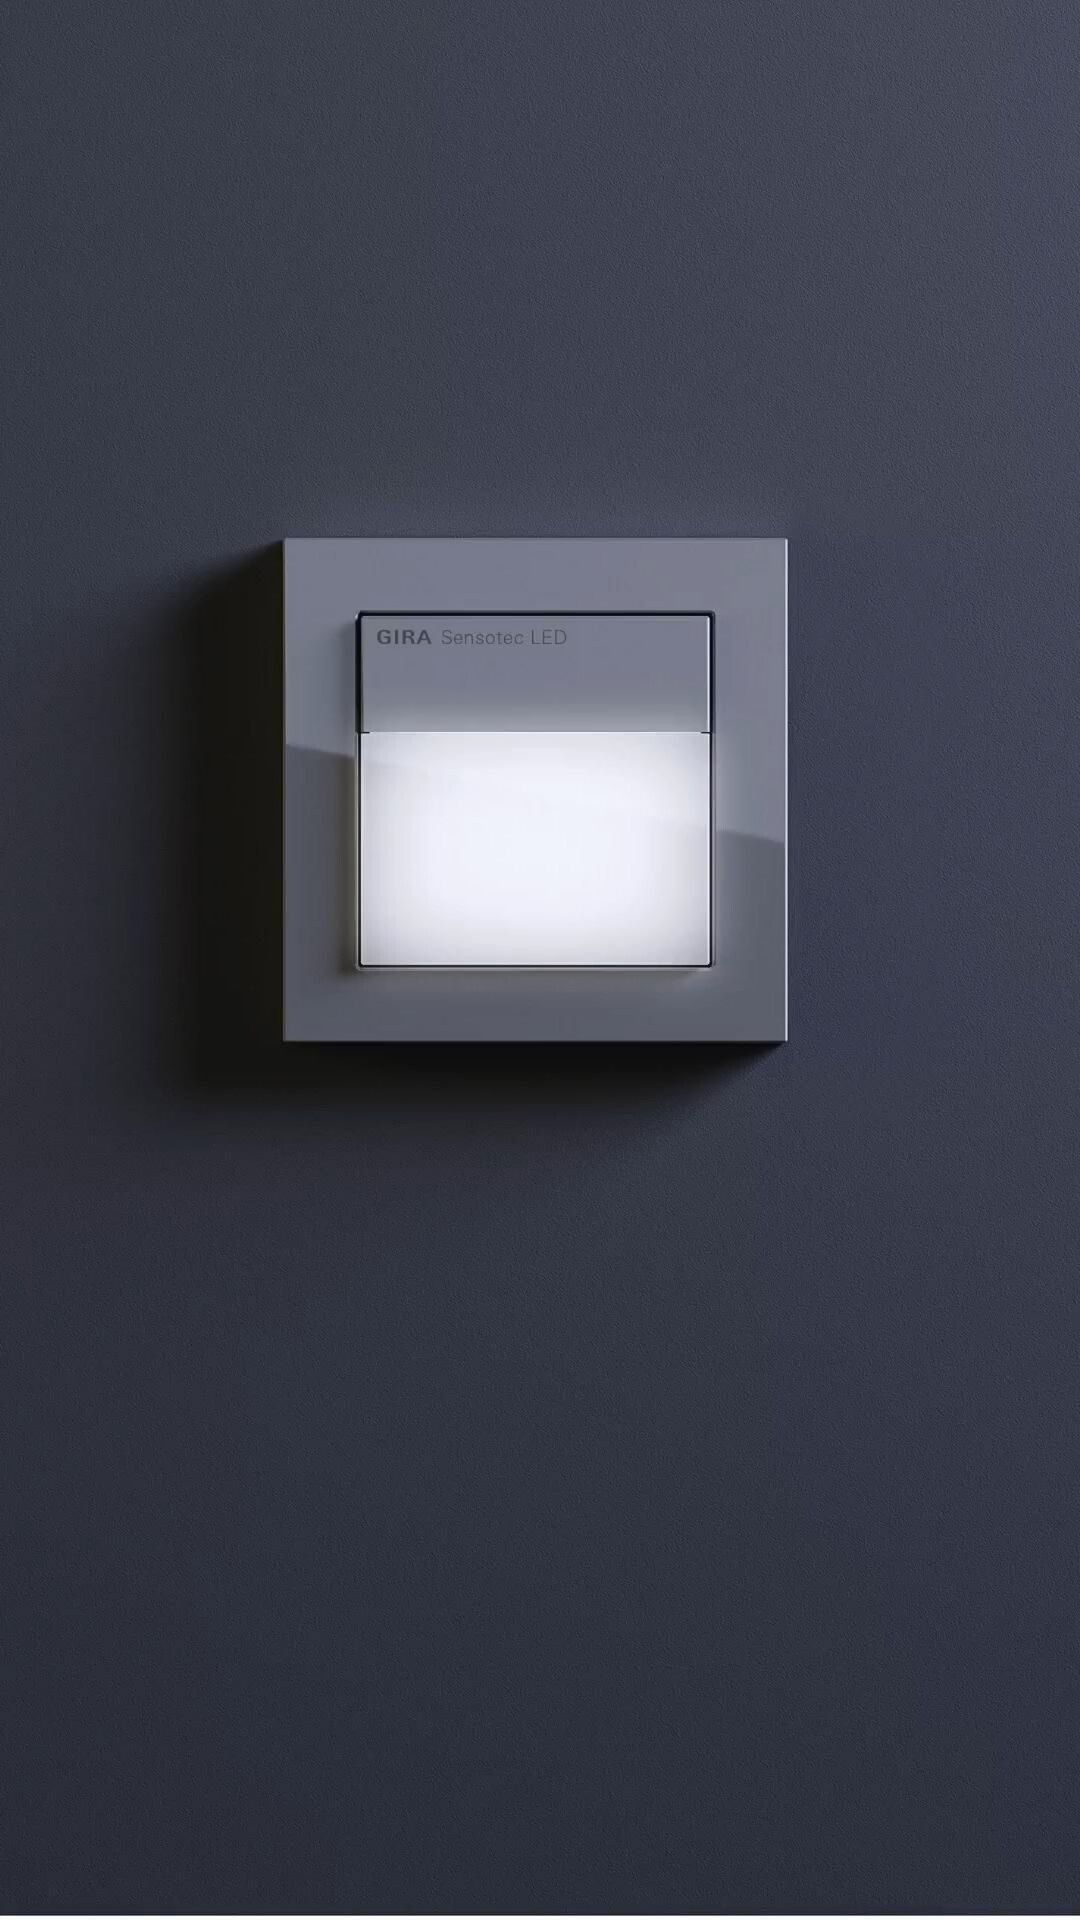 You Wake Up At Night Want To Go To The Bathroom You Lack Orientation St Because It S Dark Nn Il It Suddenly Gets Too B In 2020 Led Light Interior